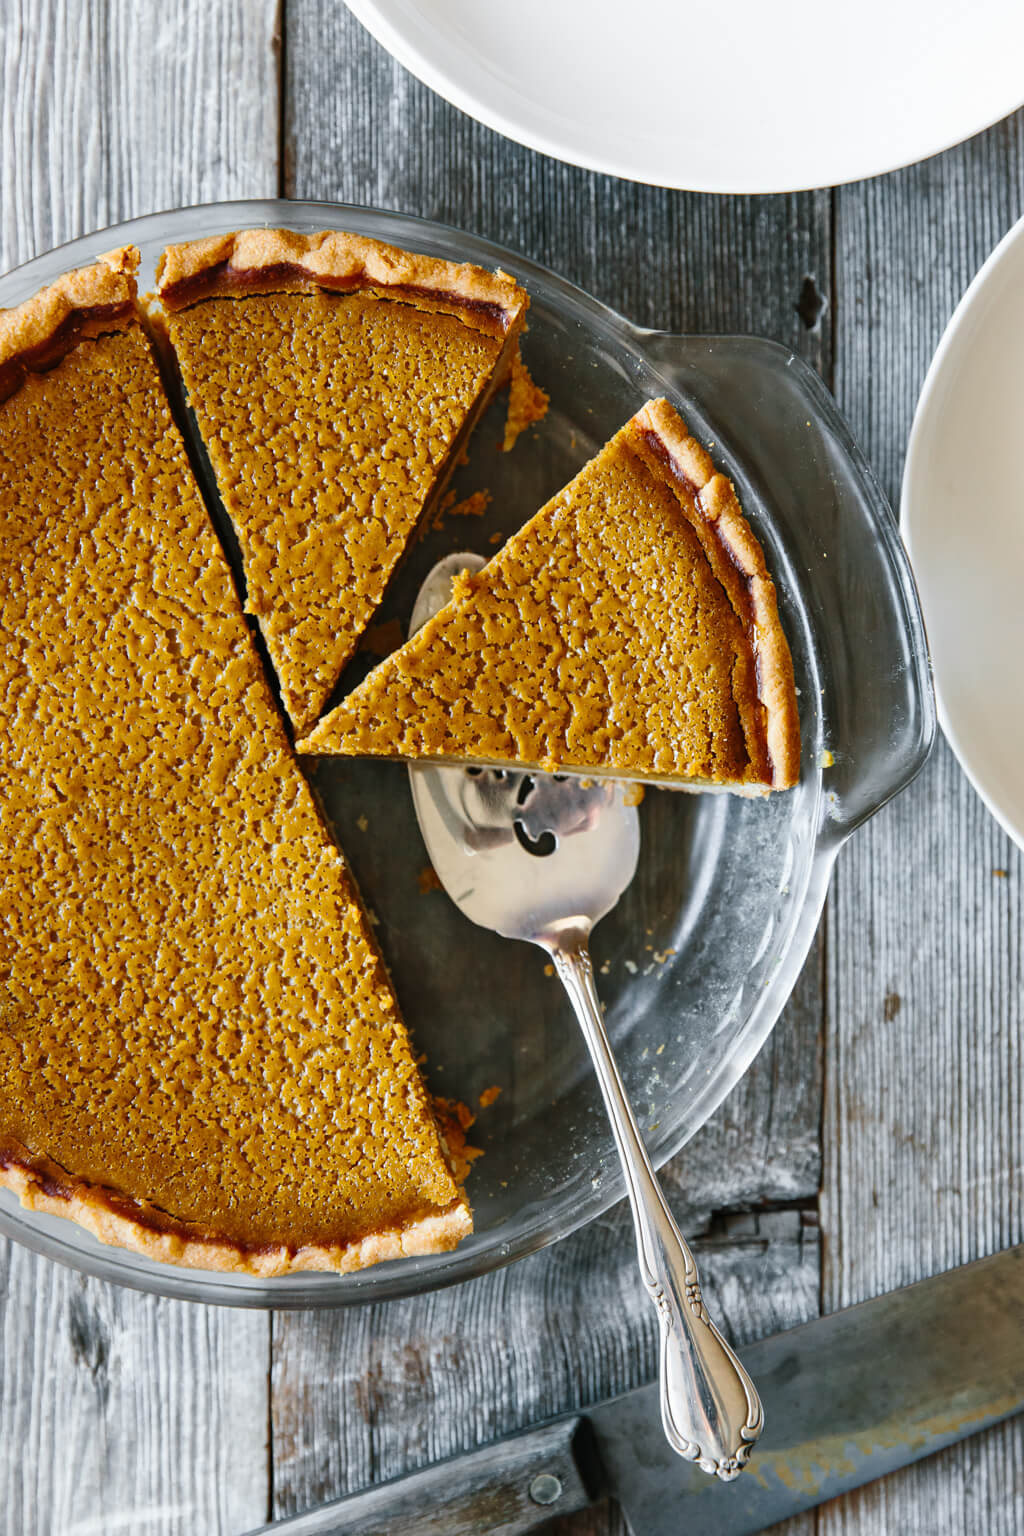 This Paleo Pumpkin Pie is creamy and delicious with a perfectly golden and flaky crust. It's gluten-free, dairy-free and refined sugar-free.